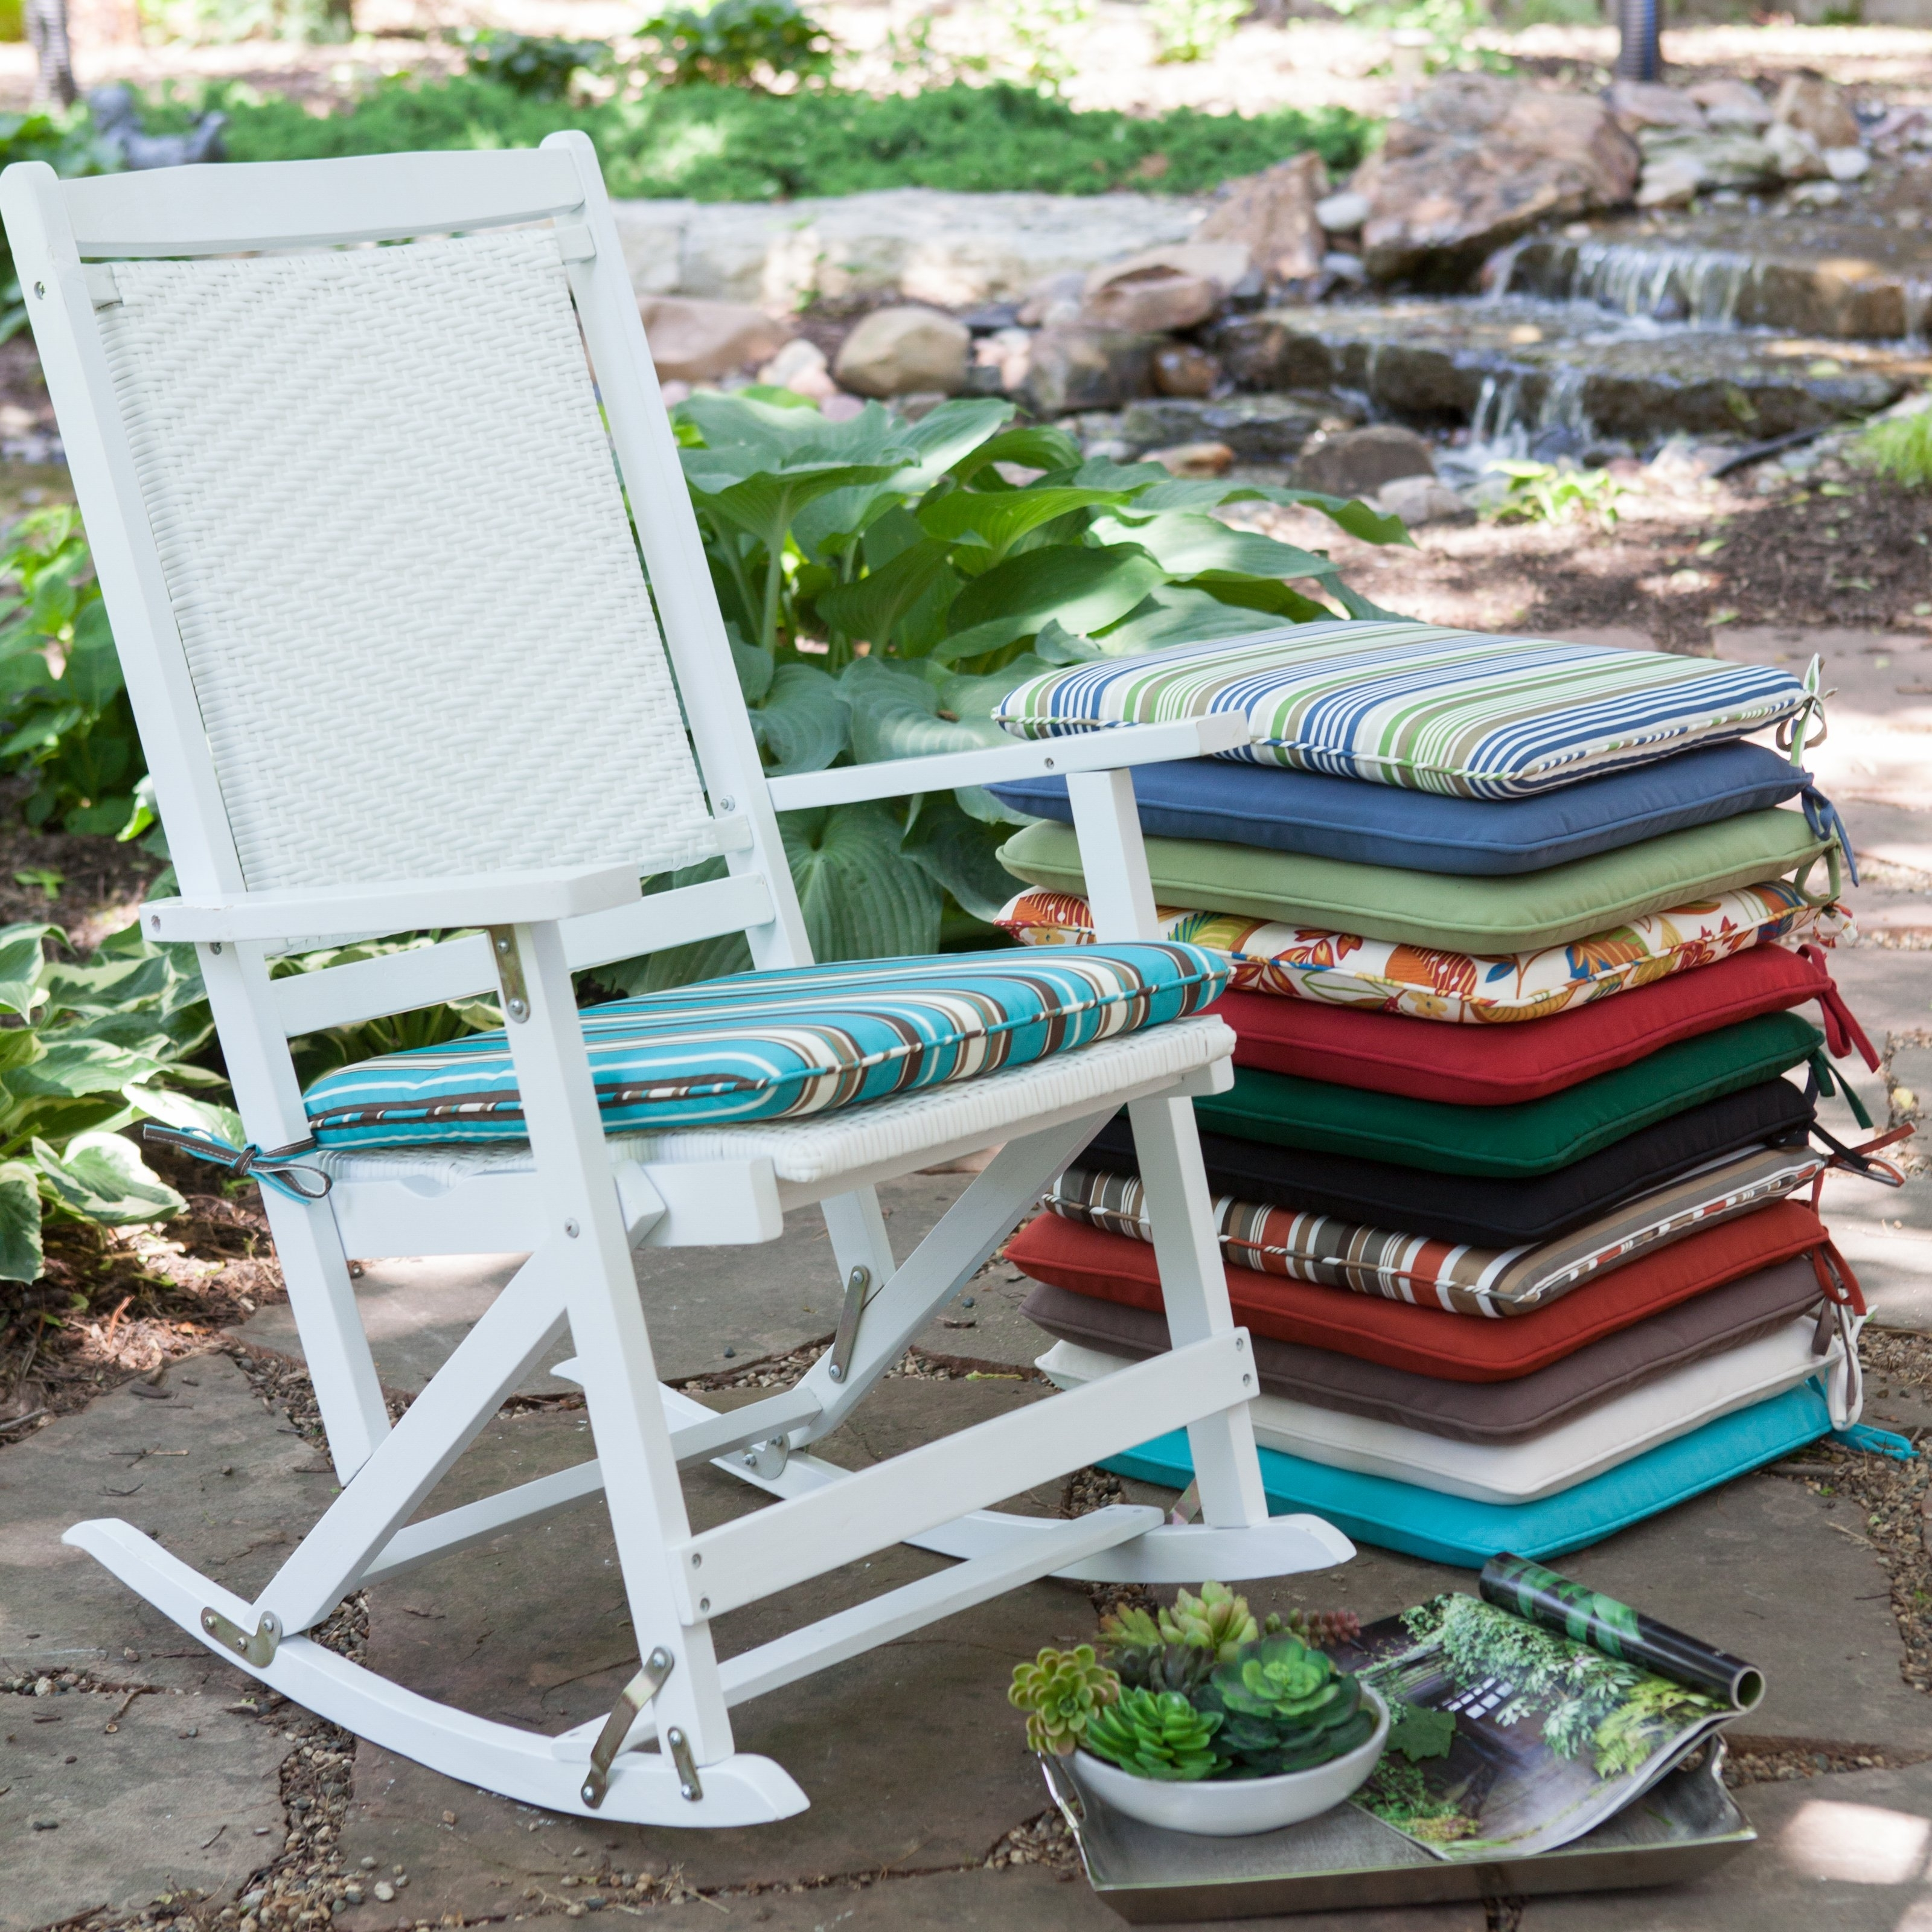 Fashionable Patio Rocking Chairs With Cushions With Regard To Stunning Sunbrella Patio Chair Cushions Outdoor Patio Rocking Chair (View 5 of 15)